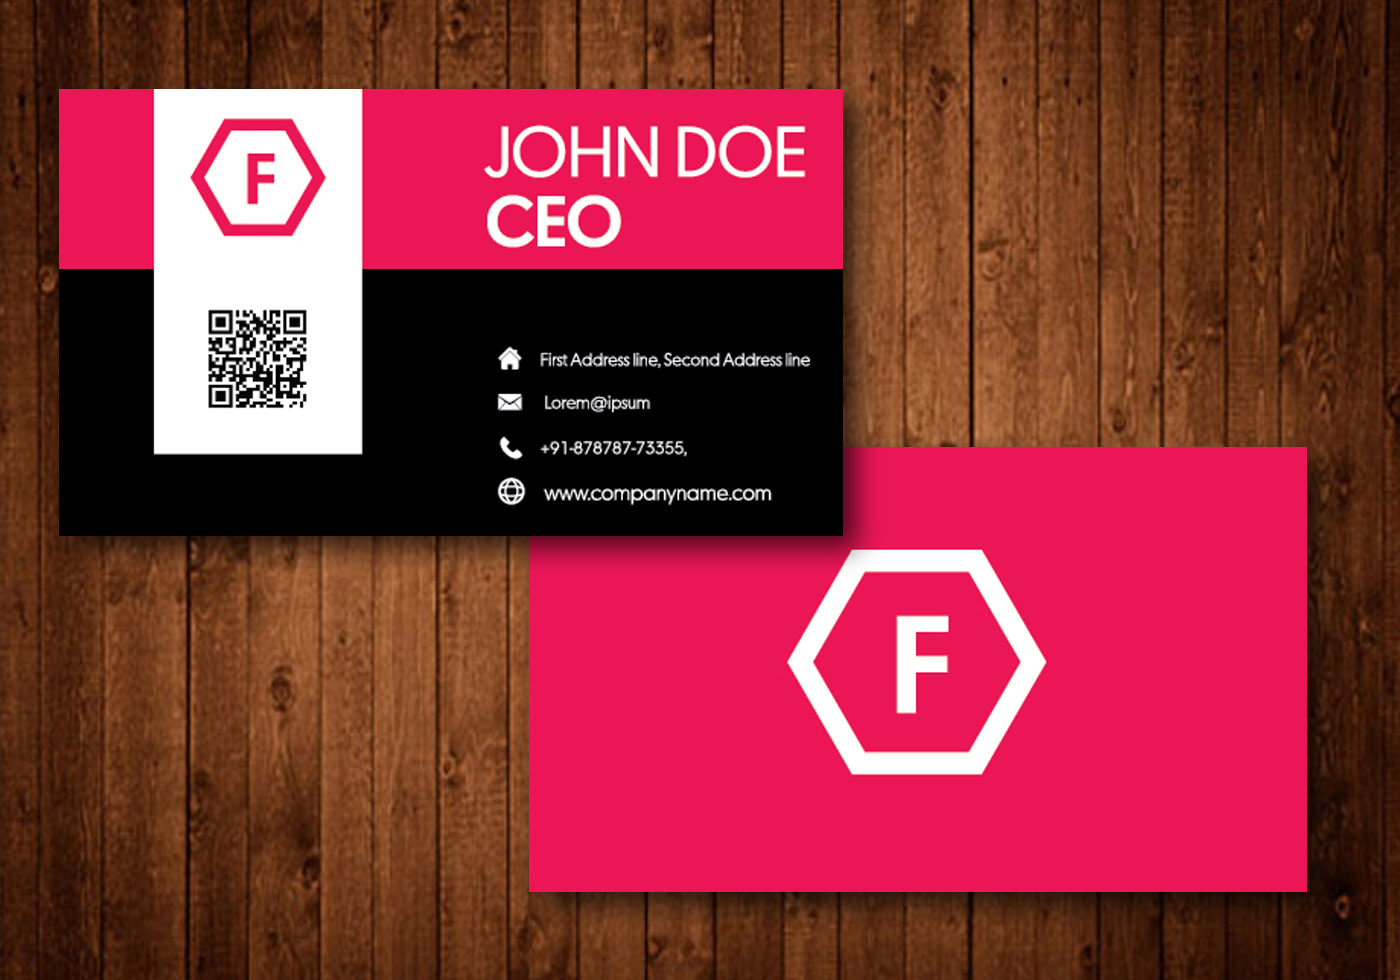 Modern creative business card download free vector art stock modern creative business card download free vector art stock graphics images reheart Gallery